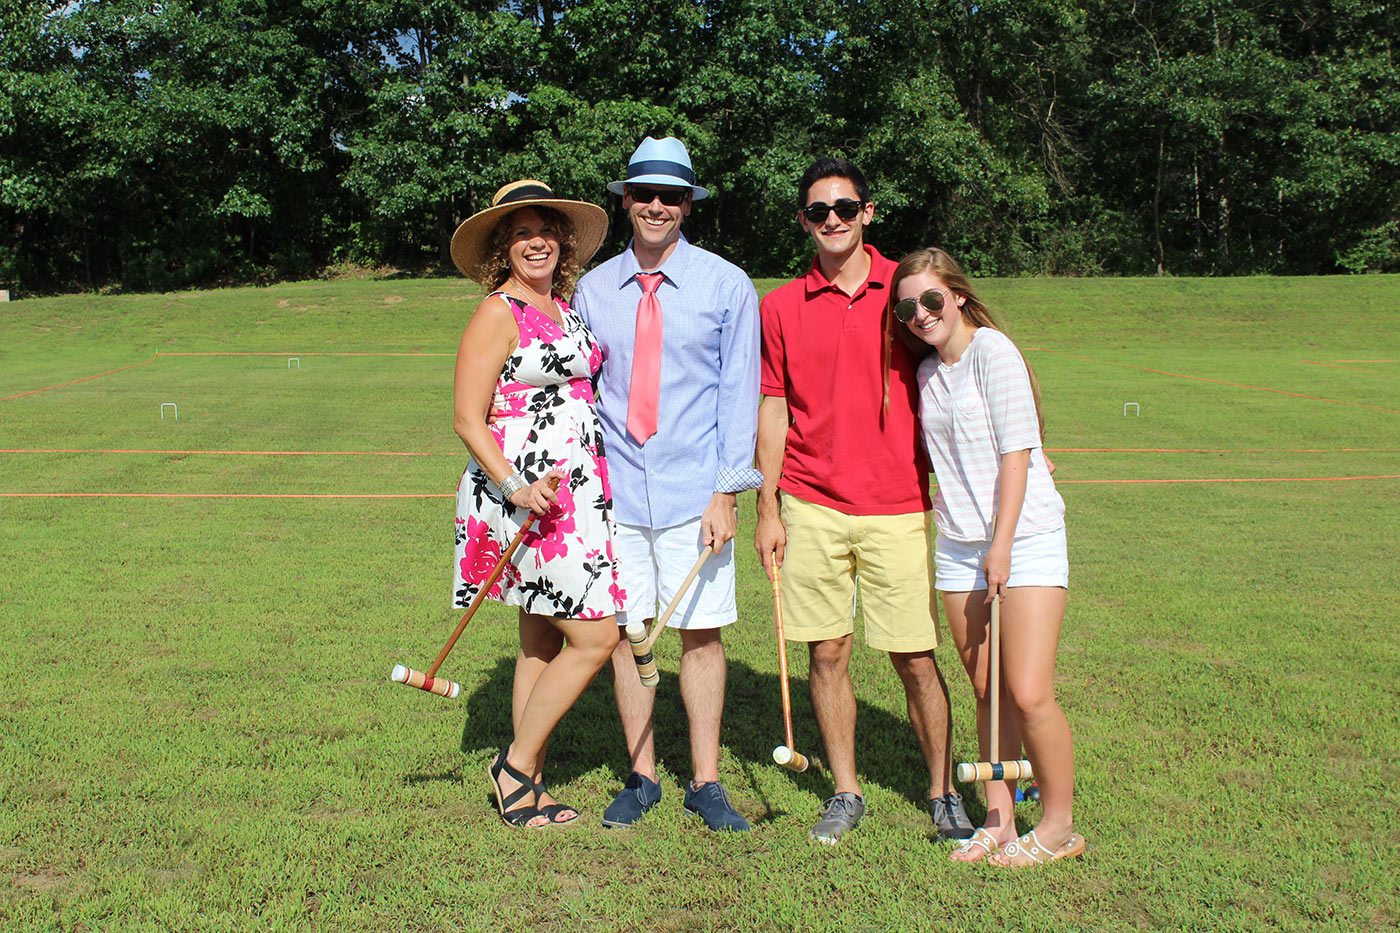 Group of people playing croquet and holding rackets